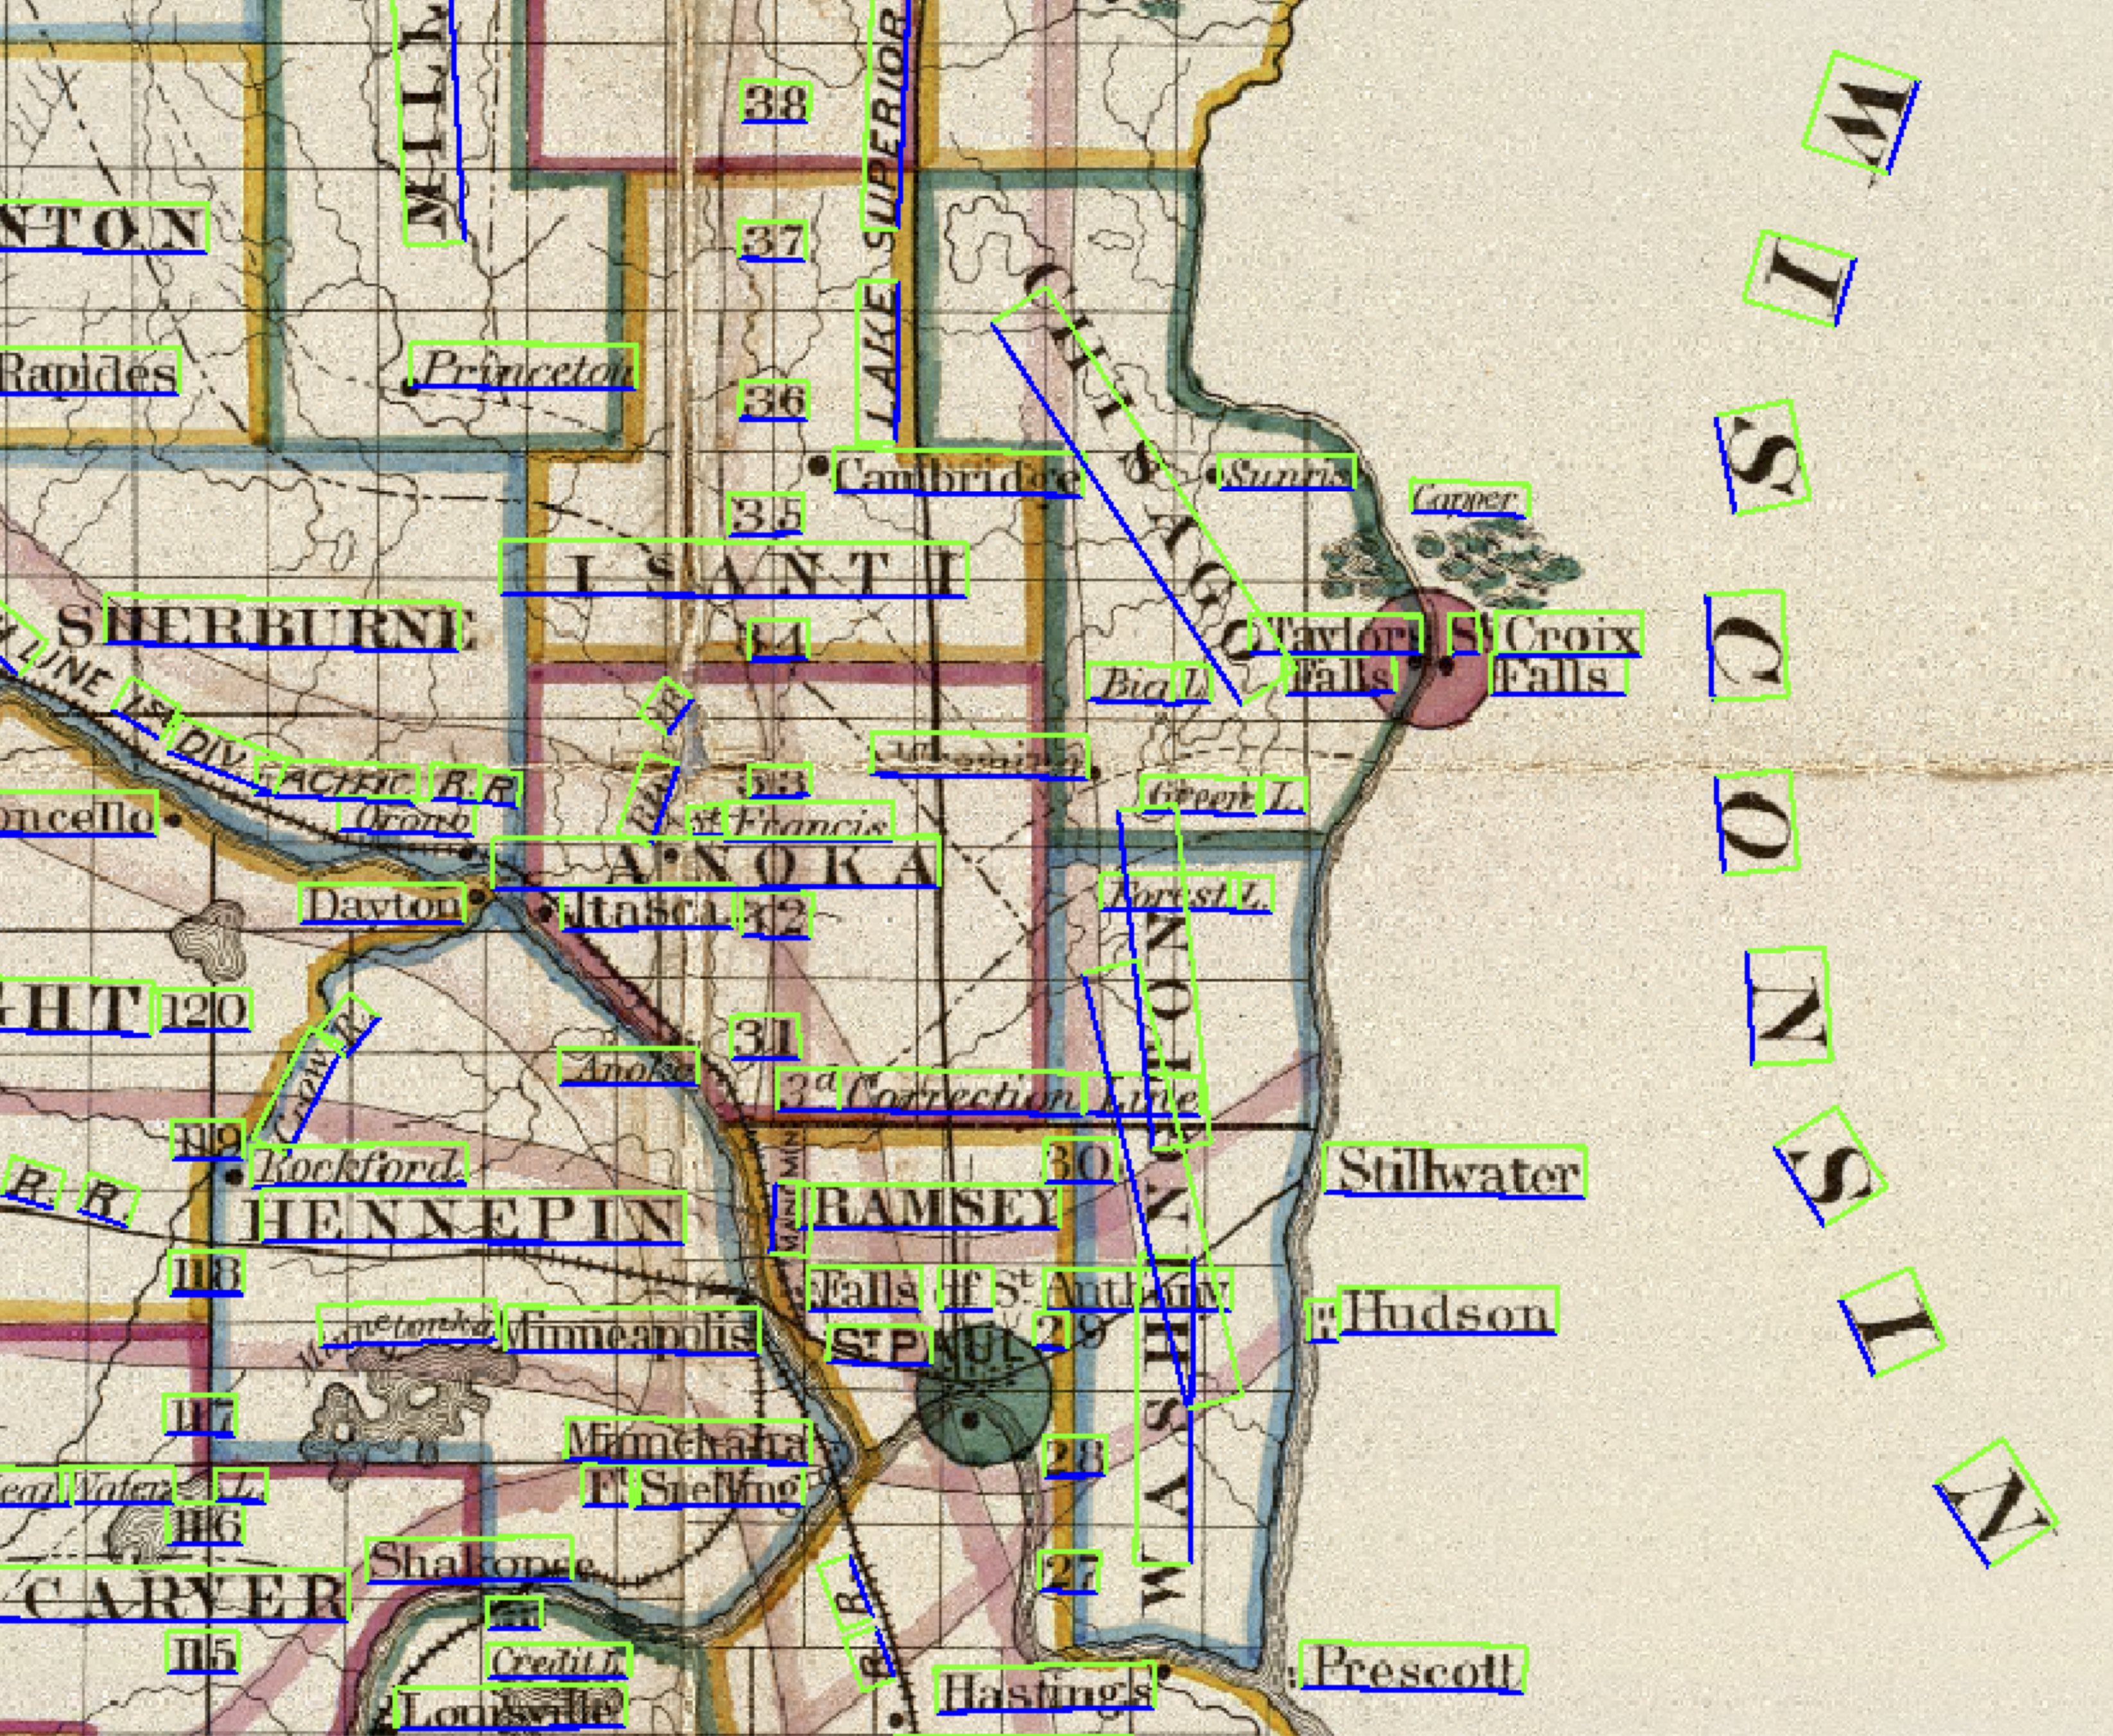 Historical Maps < Research < Jerod Weinman < CompSci < Grinnell on